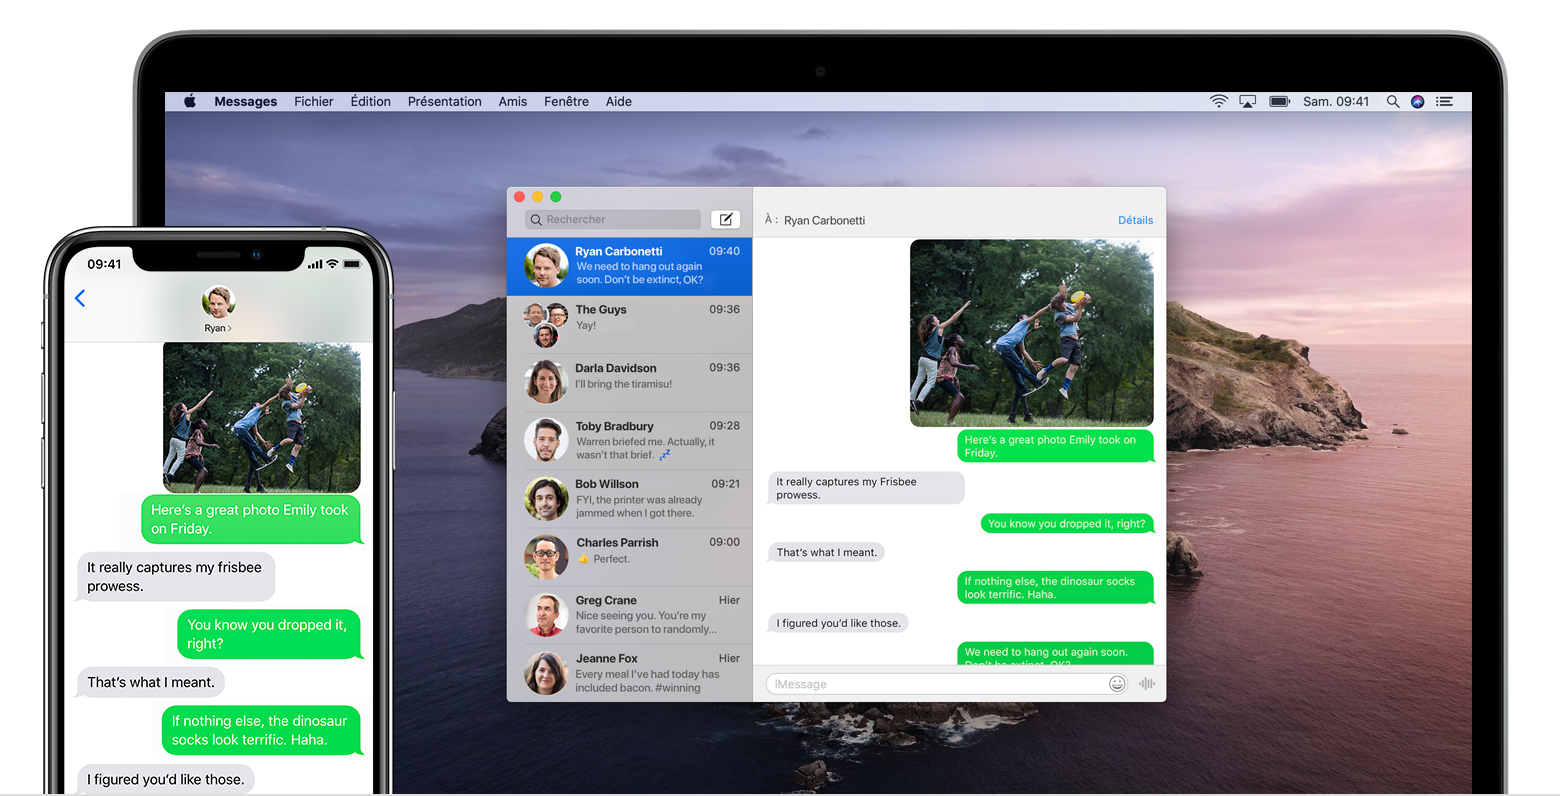 Un iPhone et un Mac affichant la même conversation par SMS